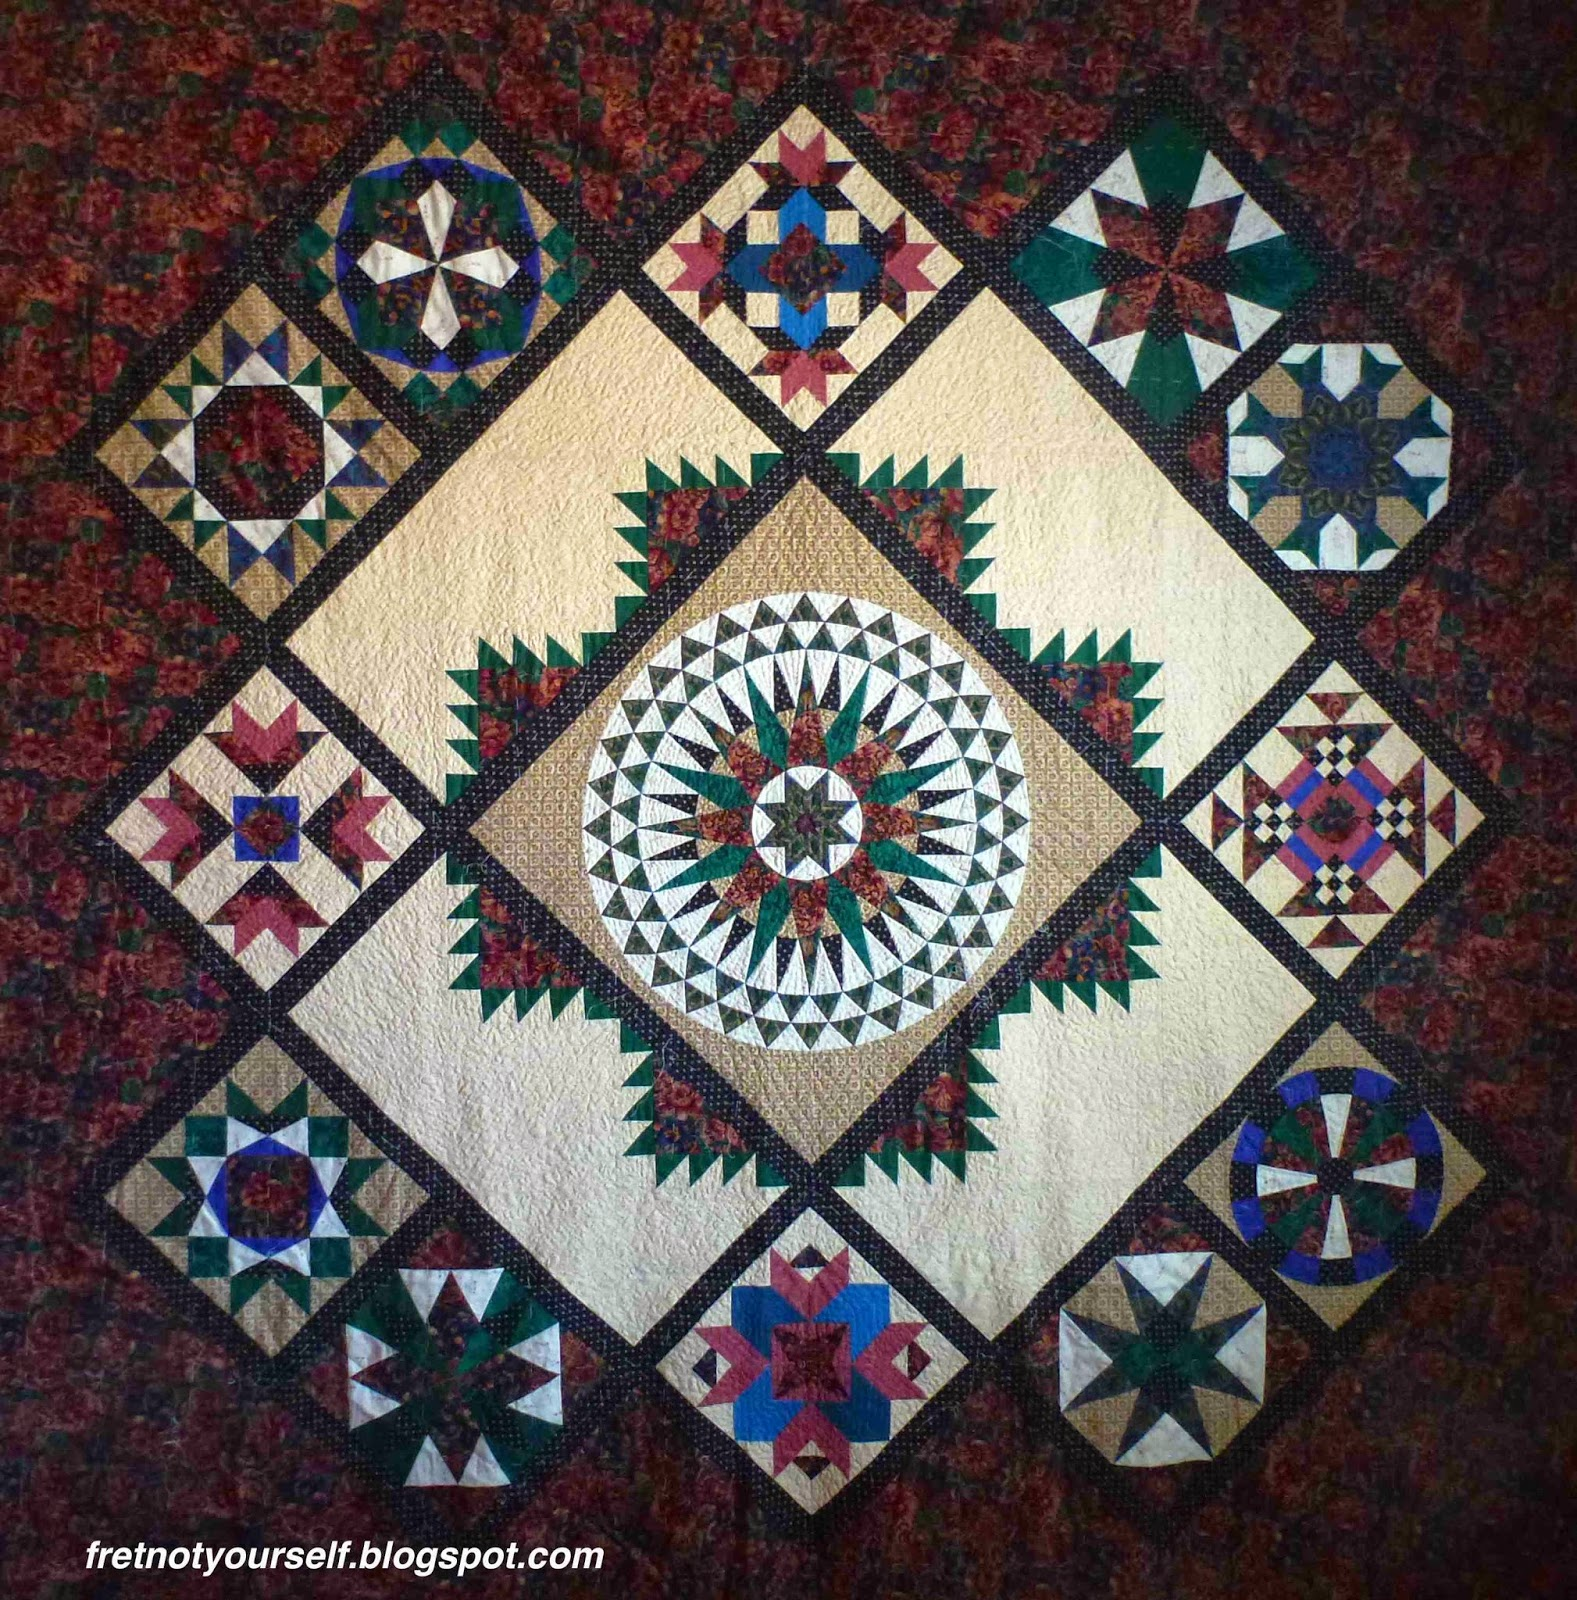 Original design of traditional quilt blocks in green, black, pink, blue, tan and white